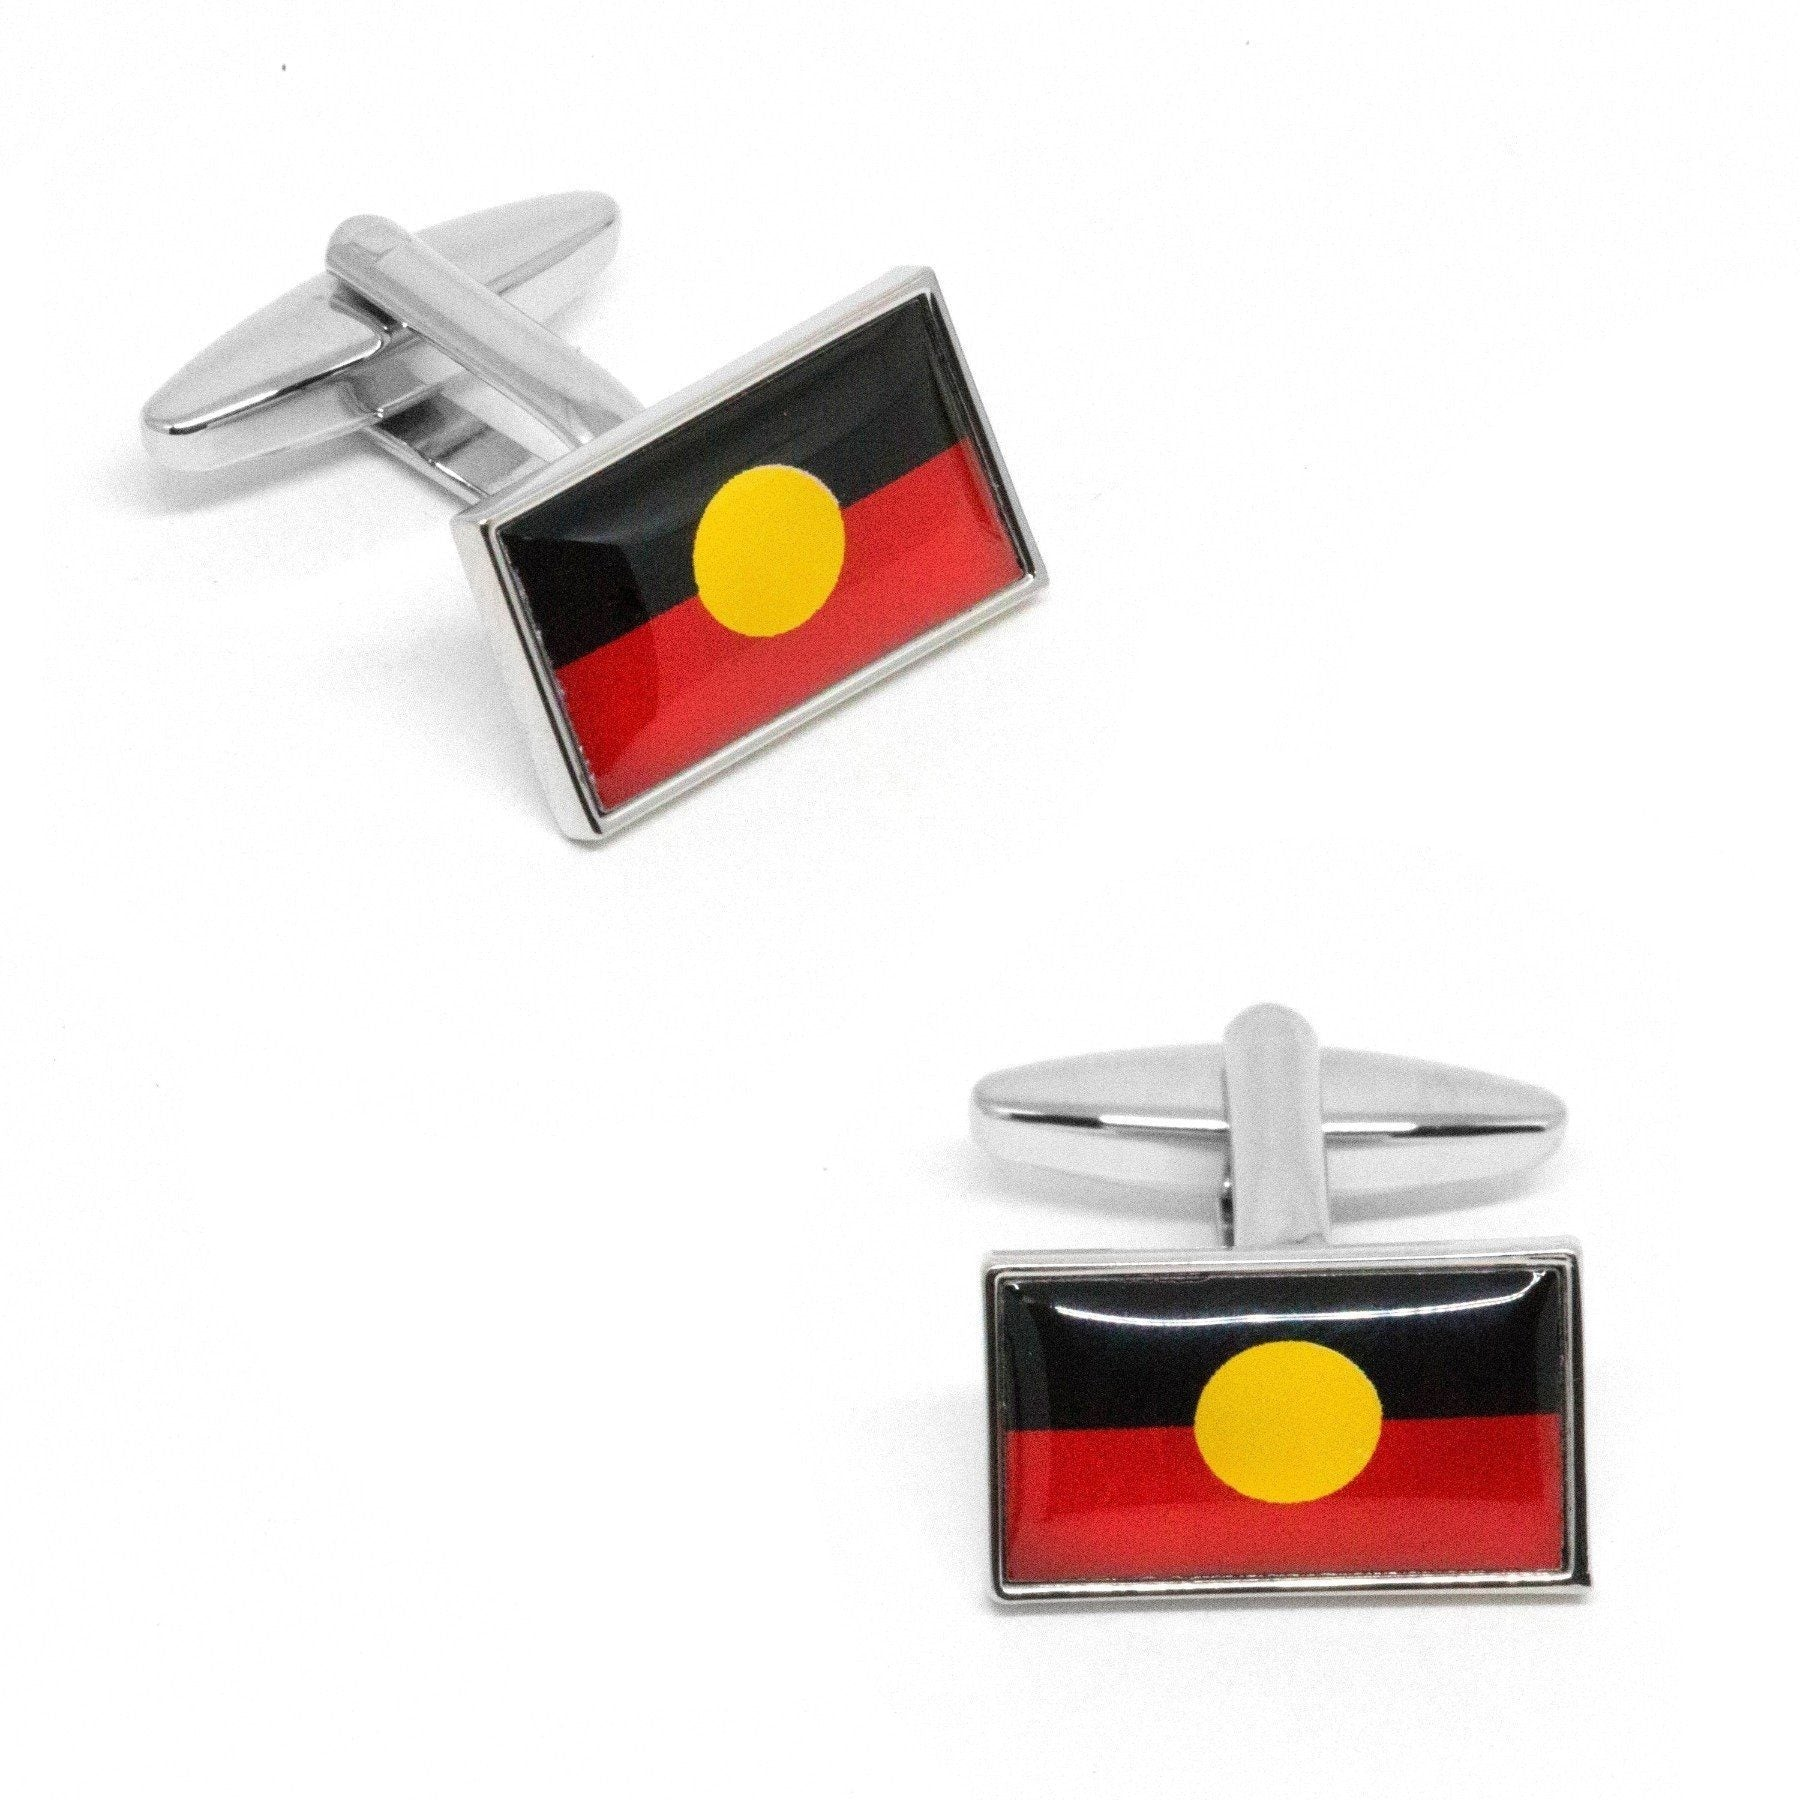 Australian Aboriginal Flag Cufflinks, Novelty Cufflinks, Cuffed.com.au, CL8501, $29.00